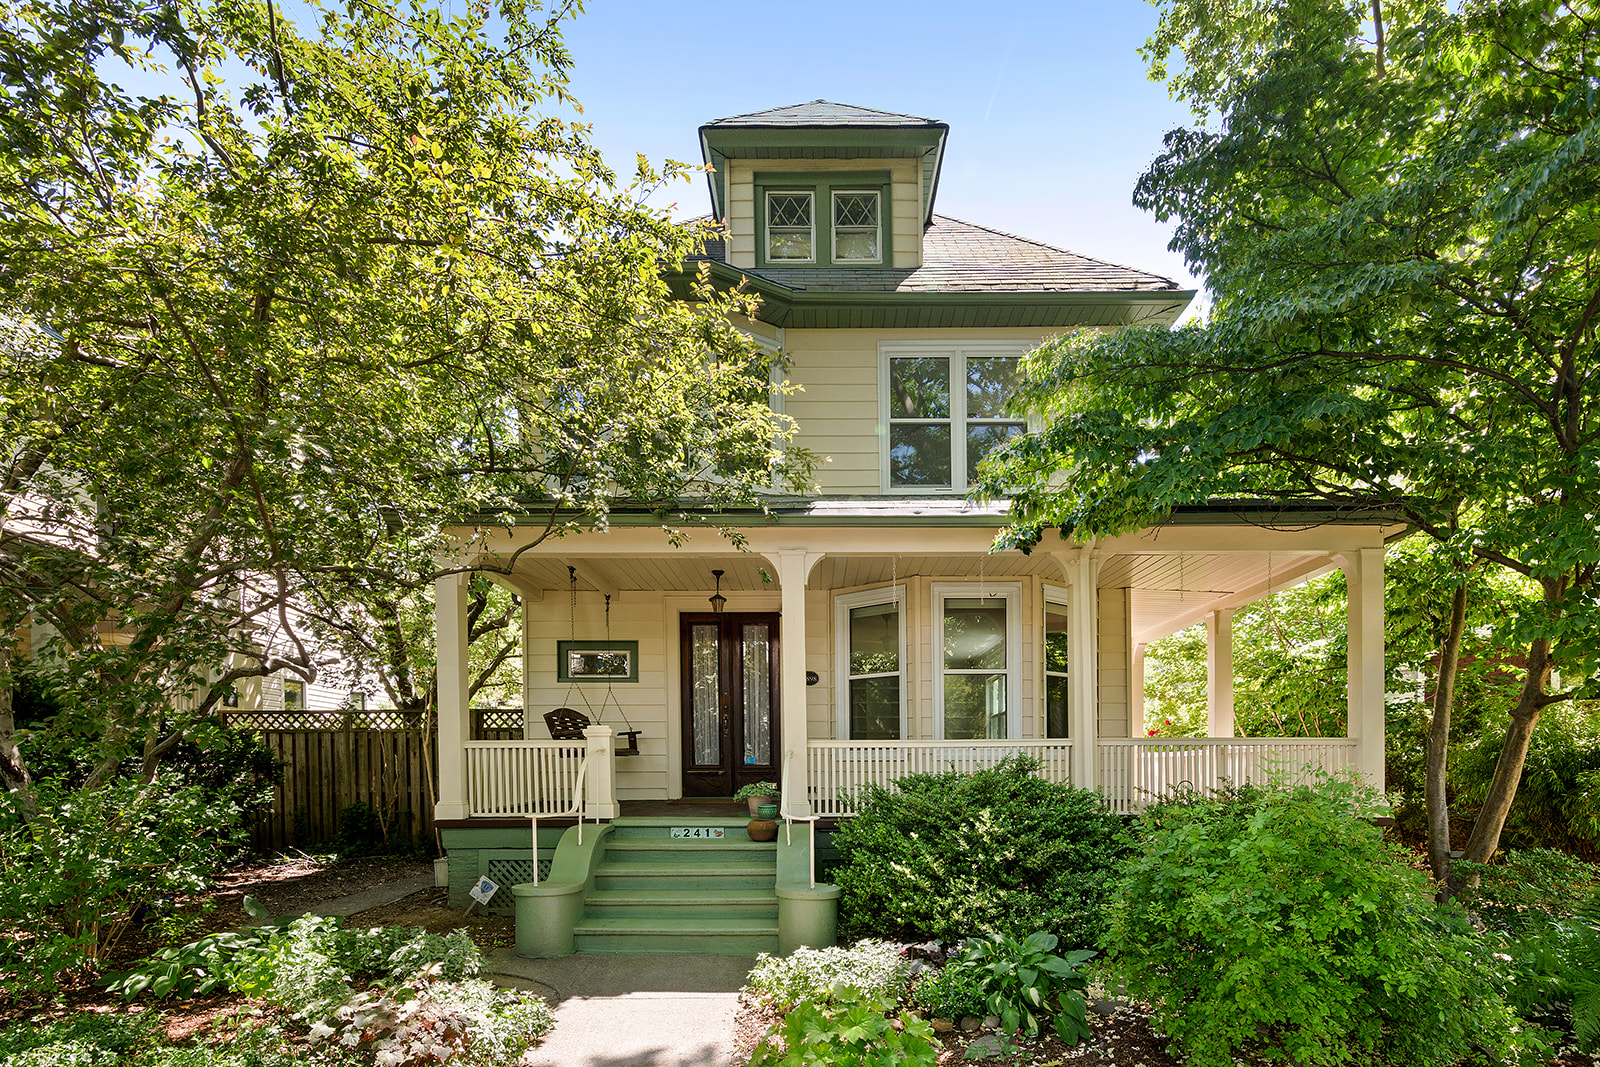 A Victorian home with eggshell-colored wood panels in its facade, green roofs, and a large porch.